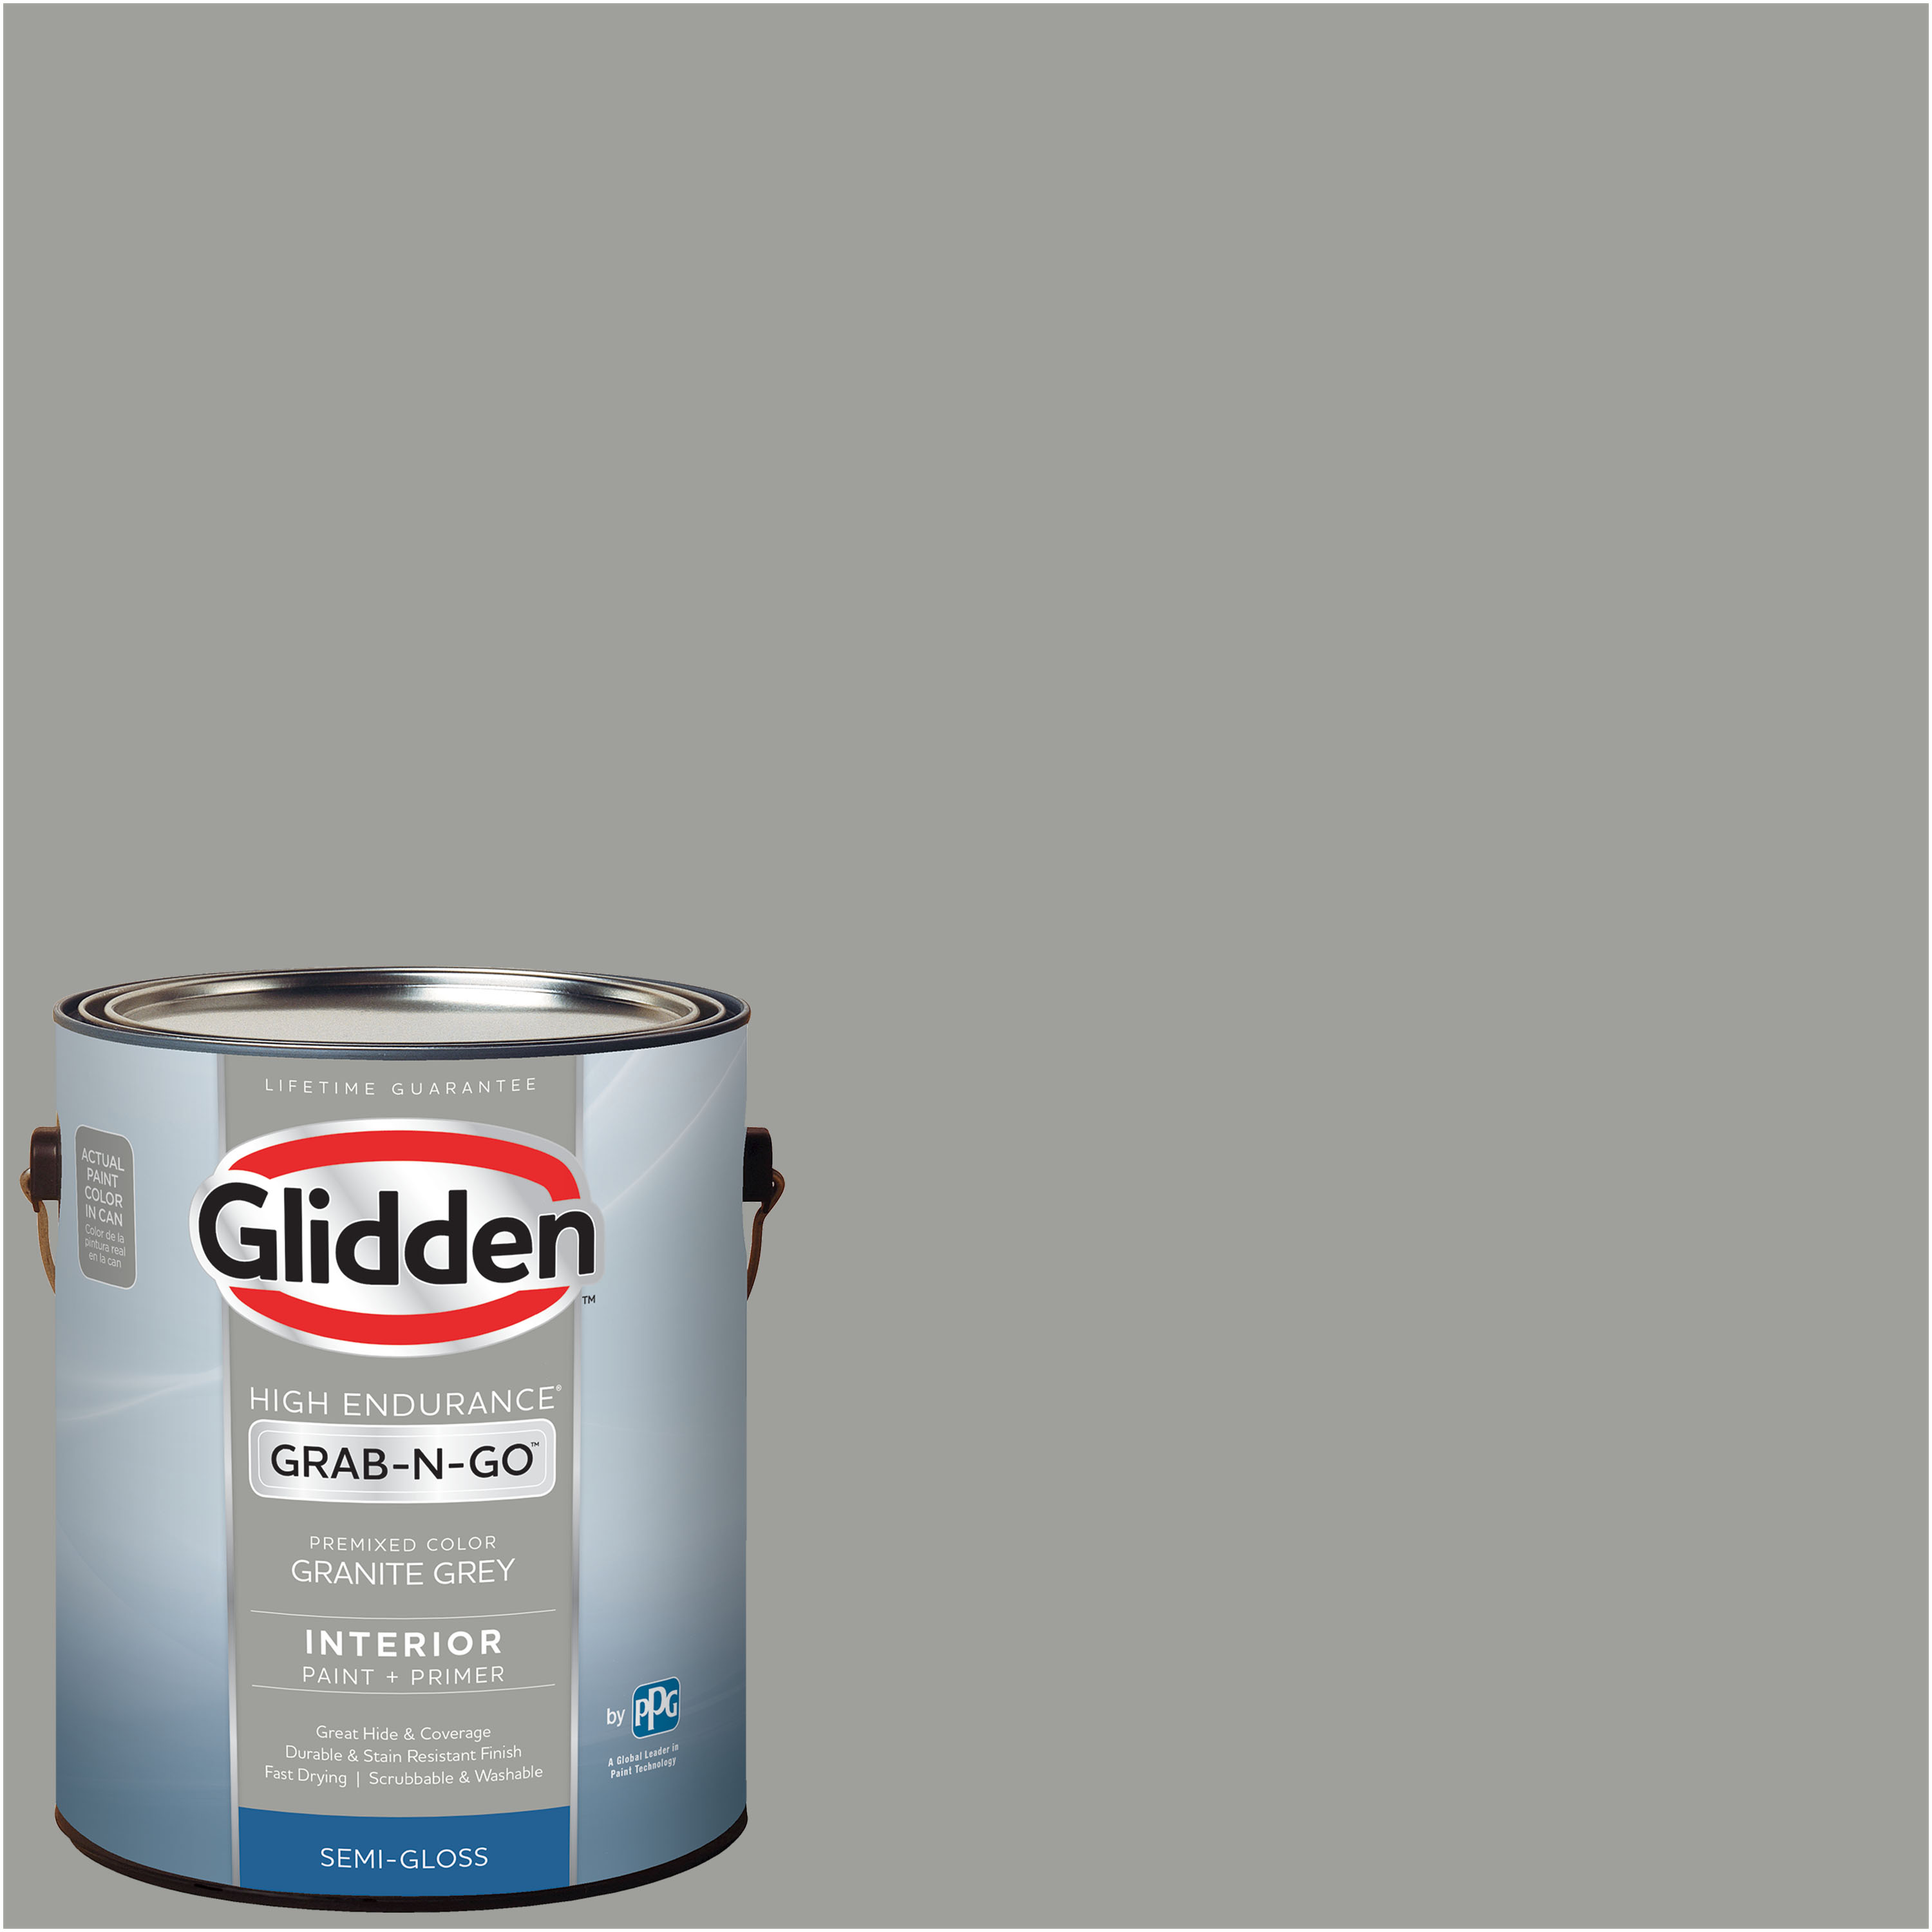 Glidden Pre Mixed Ready To Use Interior Paint And Primer Granite Grey 1 Gallon